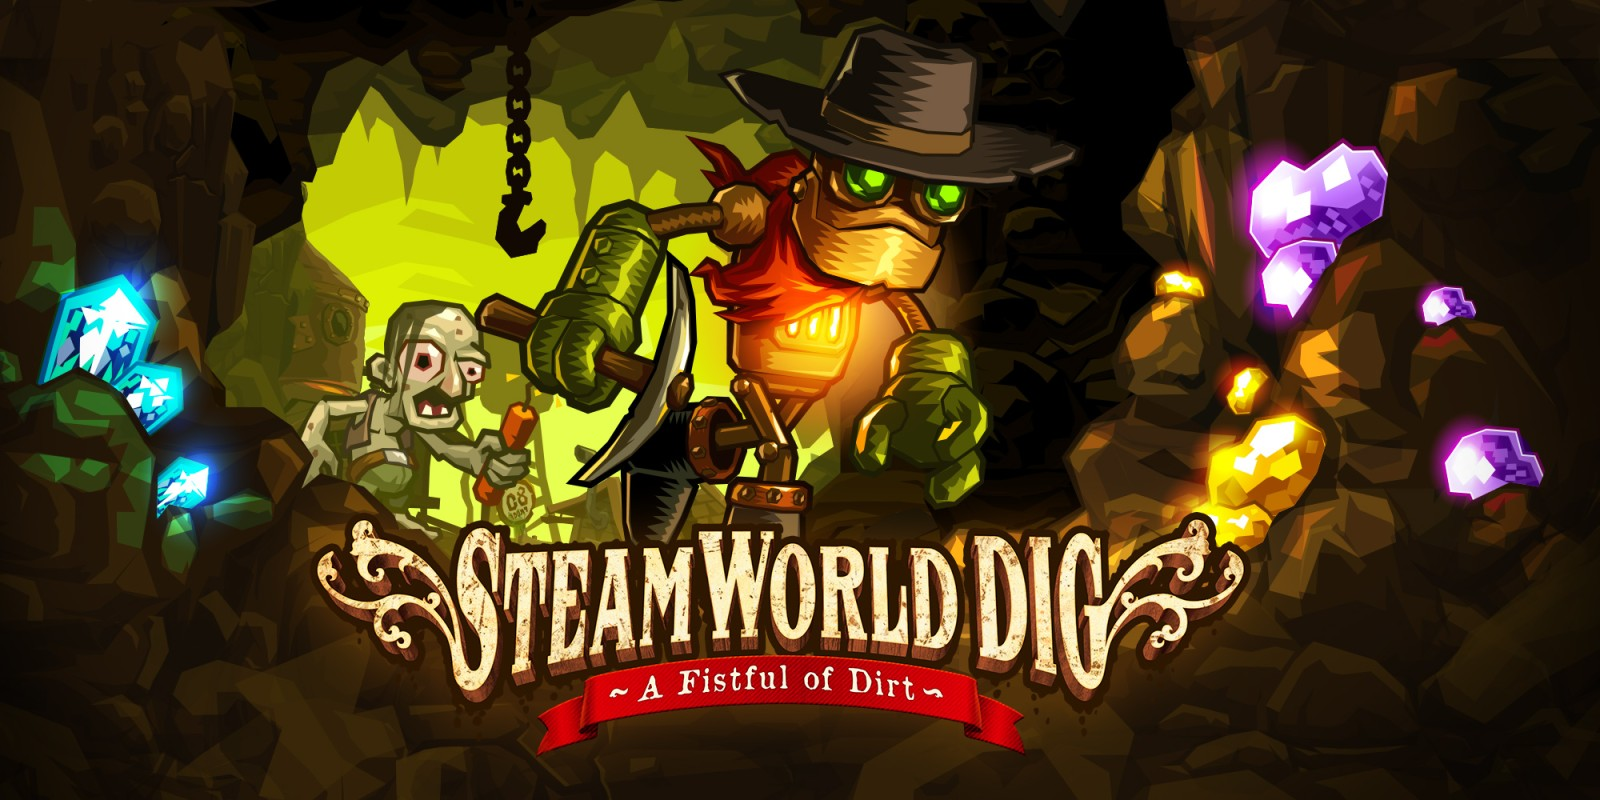 steamworld dig nintendo 3ds download software games